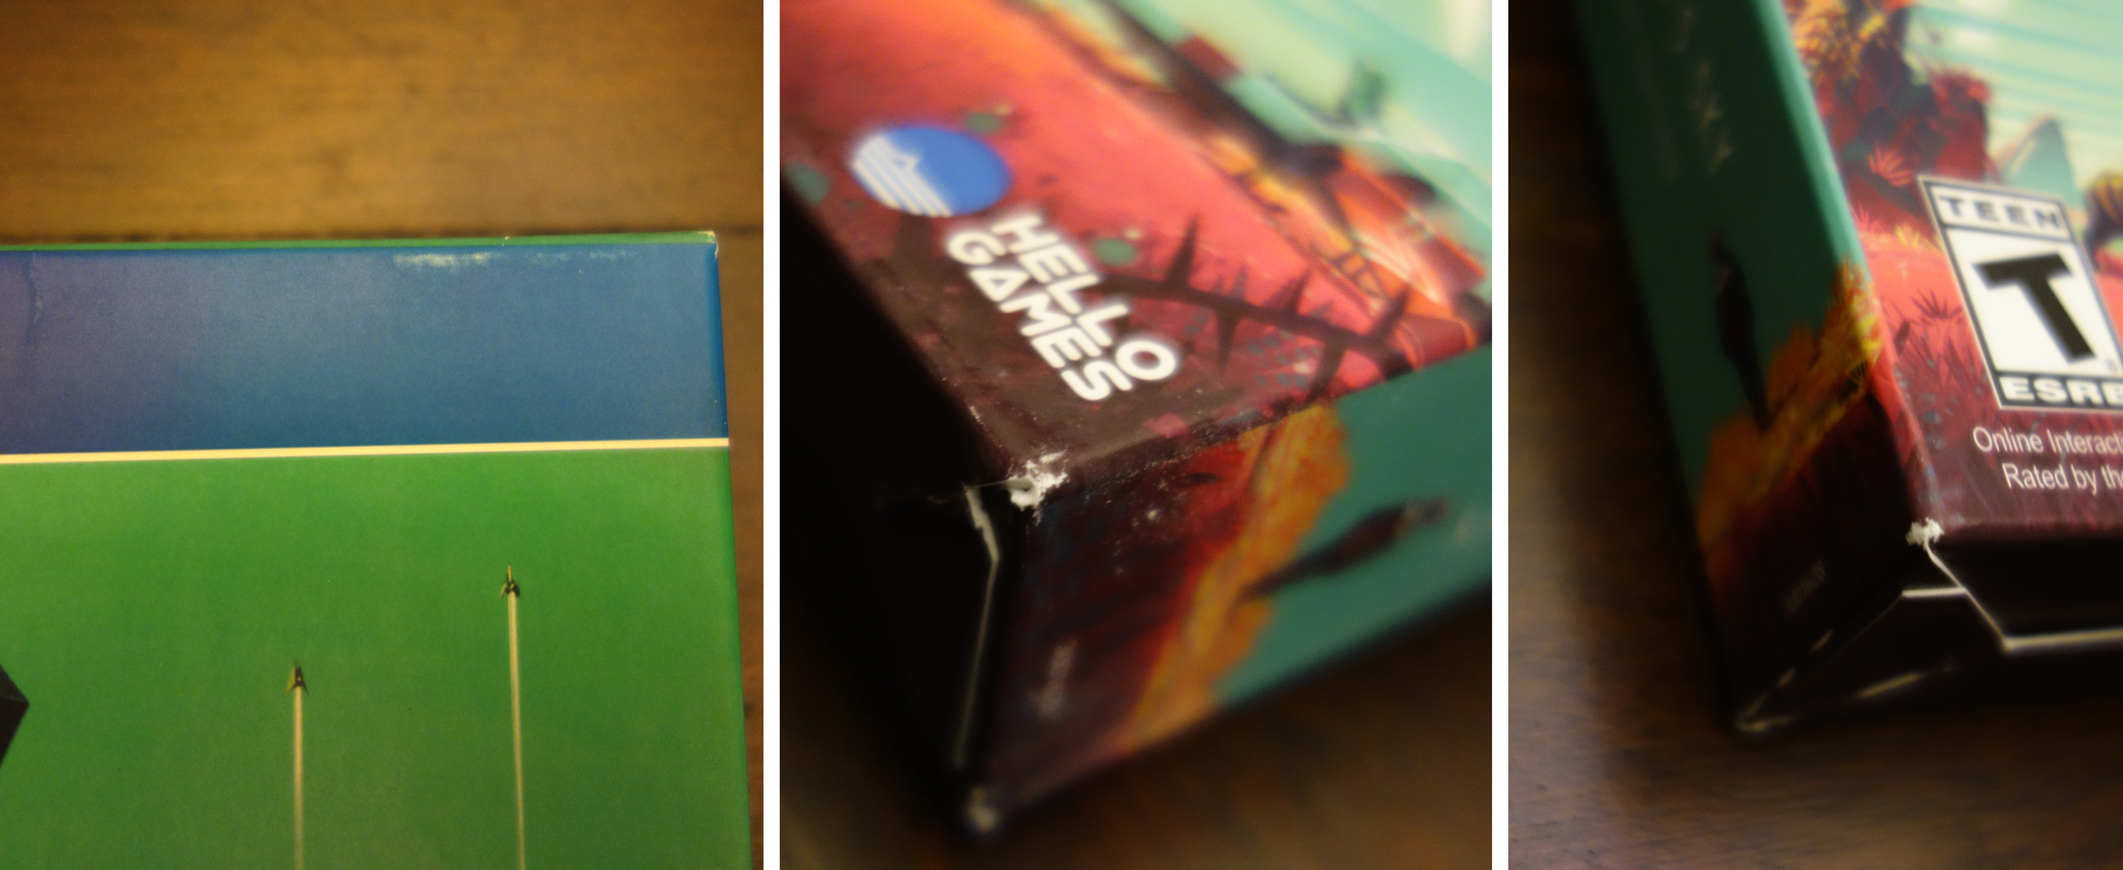 'No Man's Sky - Limited Edition PS4 box damage